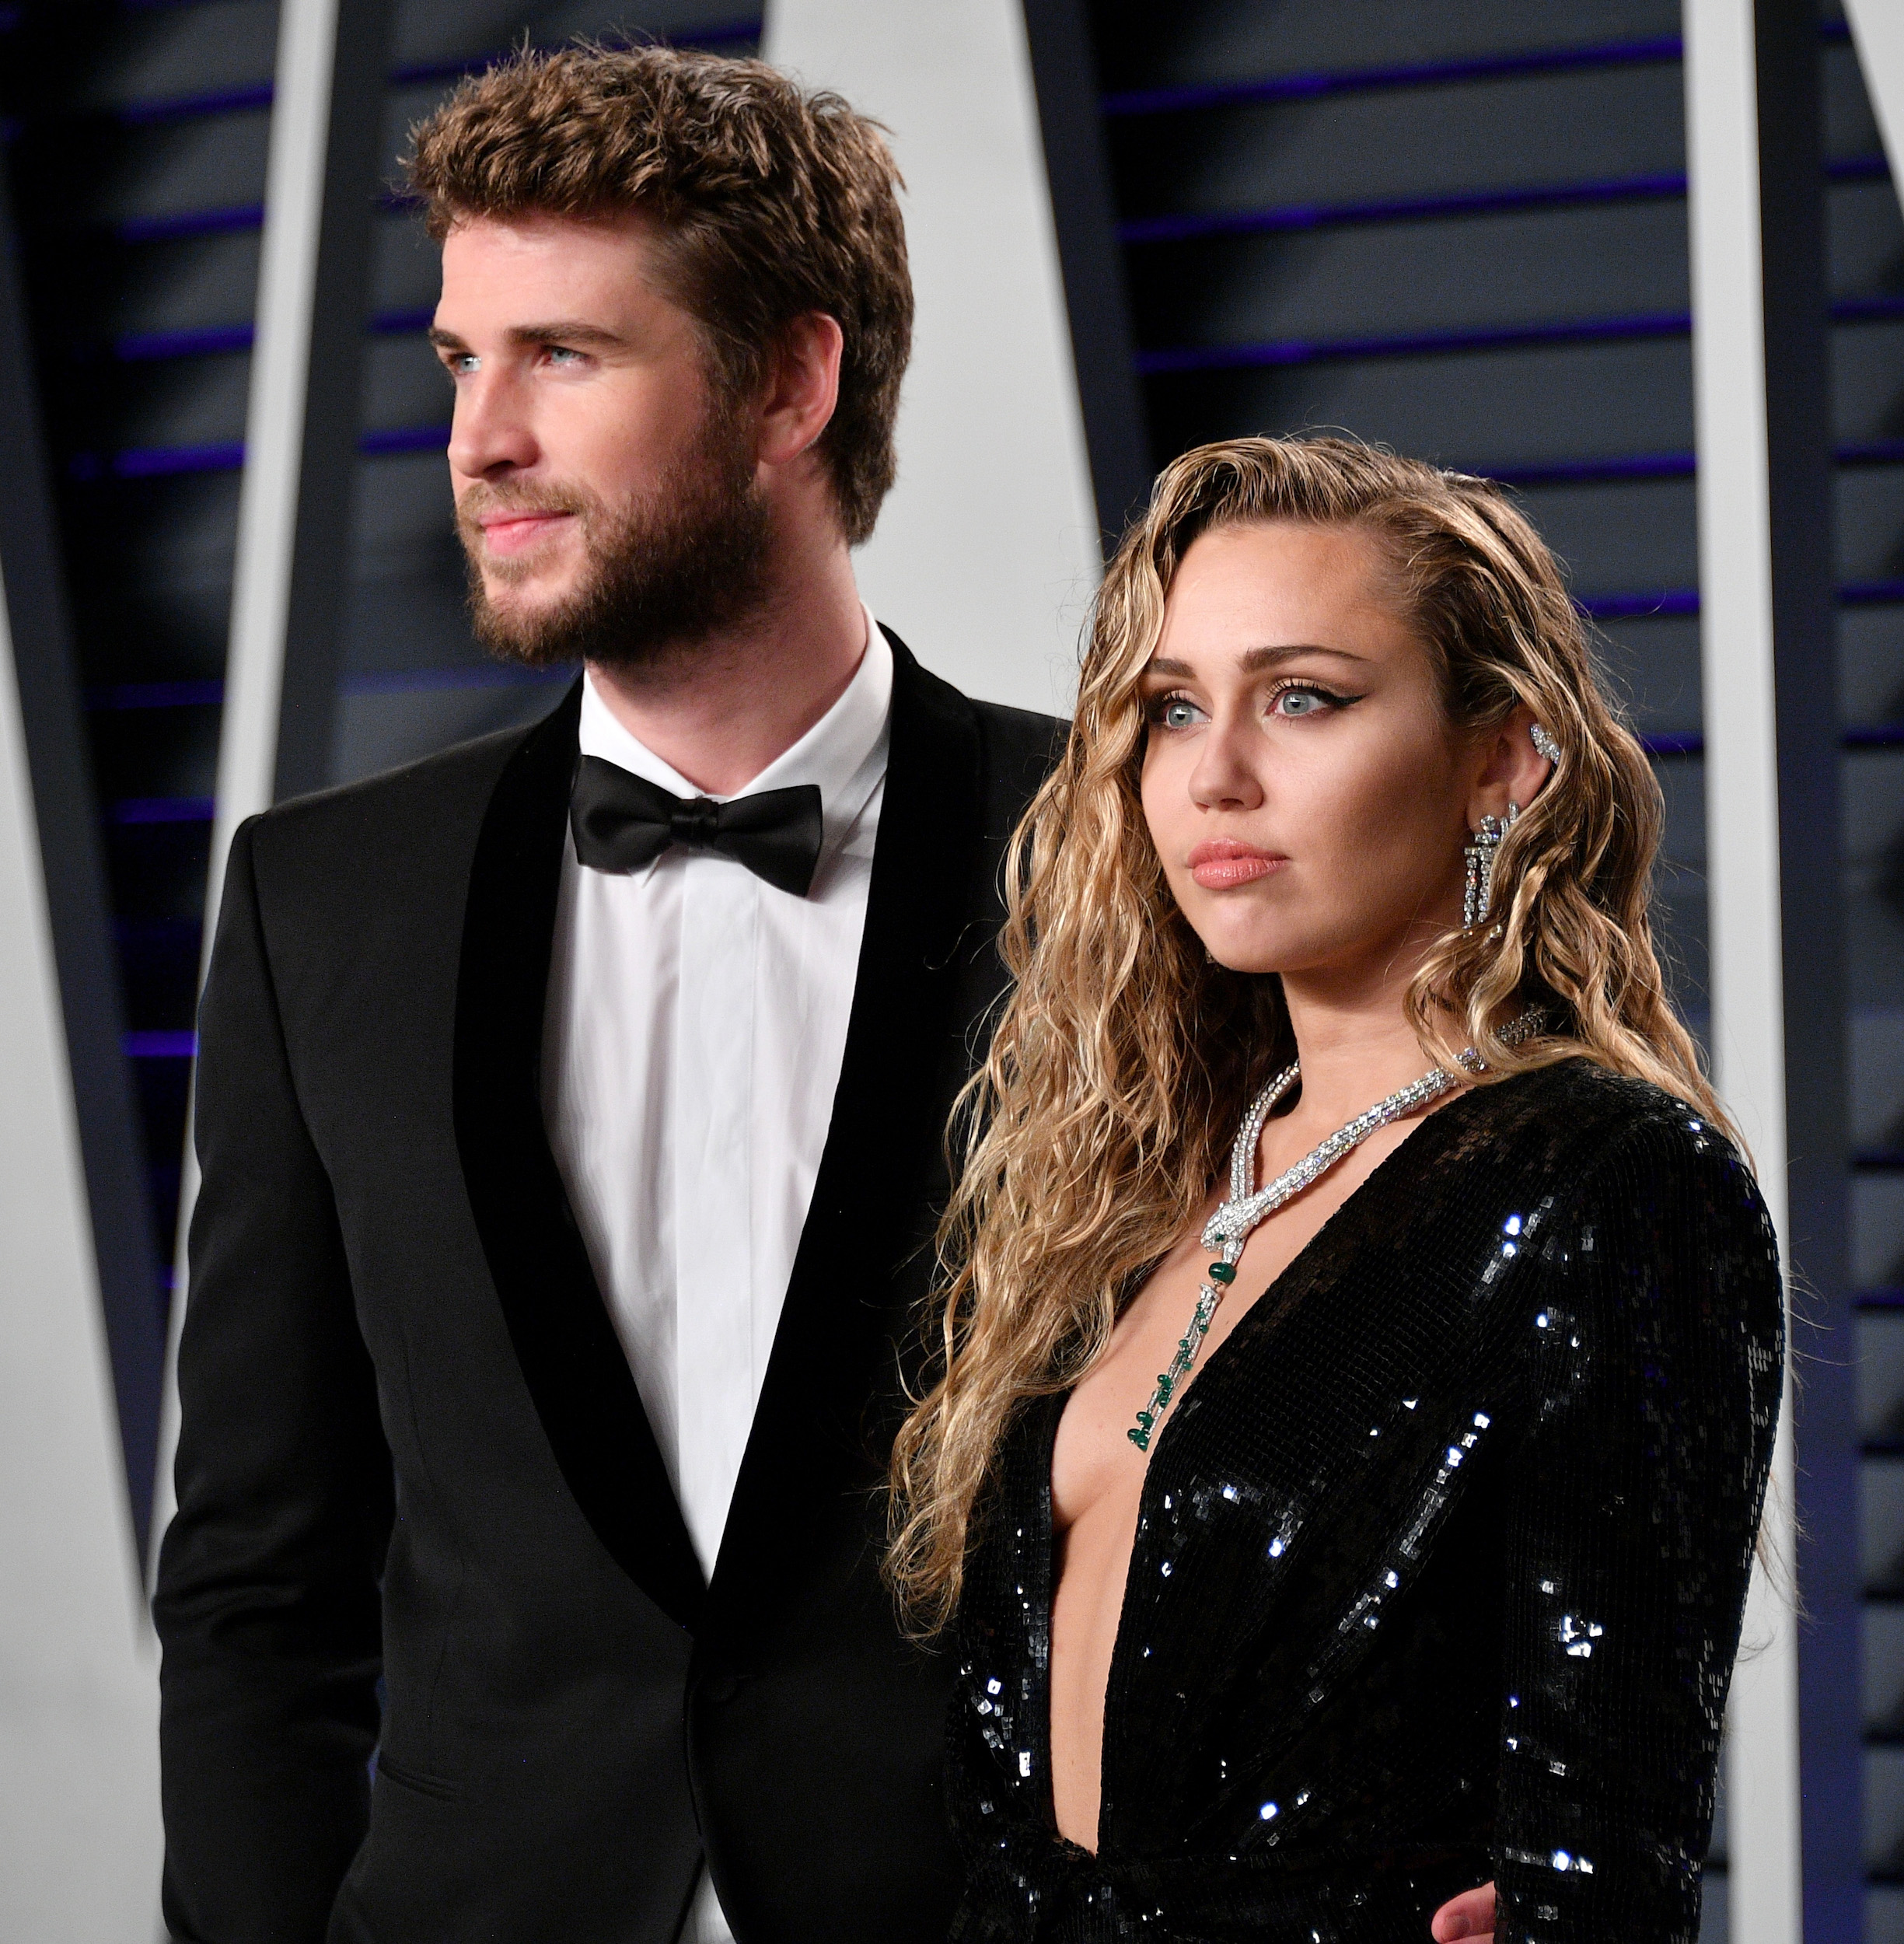 Liam Hemsworth and Miley Cyrus attend the 2019 Vanity Fair Oscar Party hosted by Radhika Jones at Wallis Annenberg Center for the Performing Arts on February 24, 2019 in Beverly Hills, California.